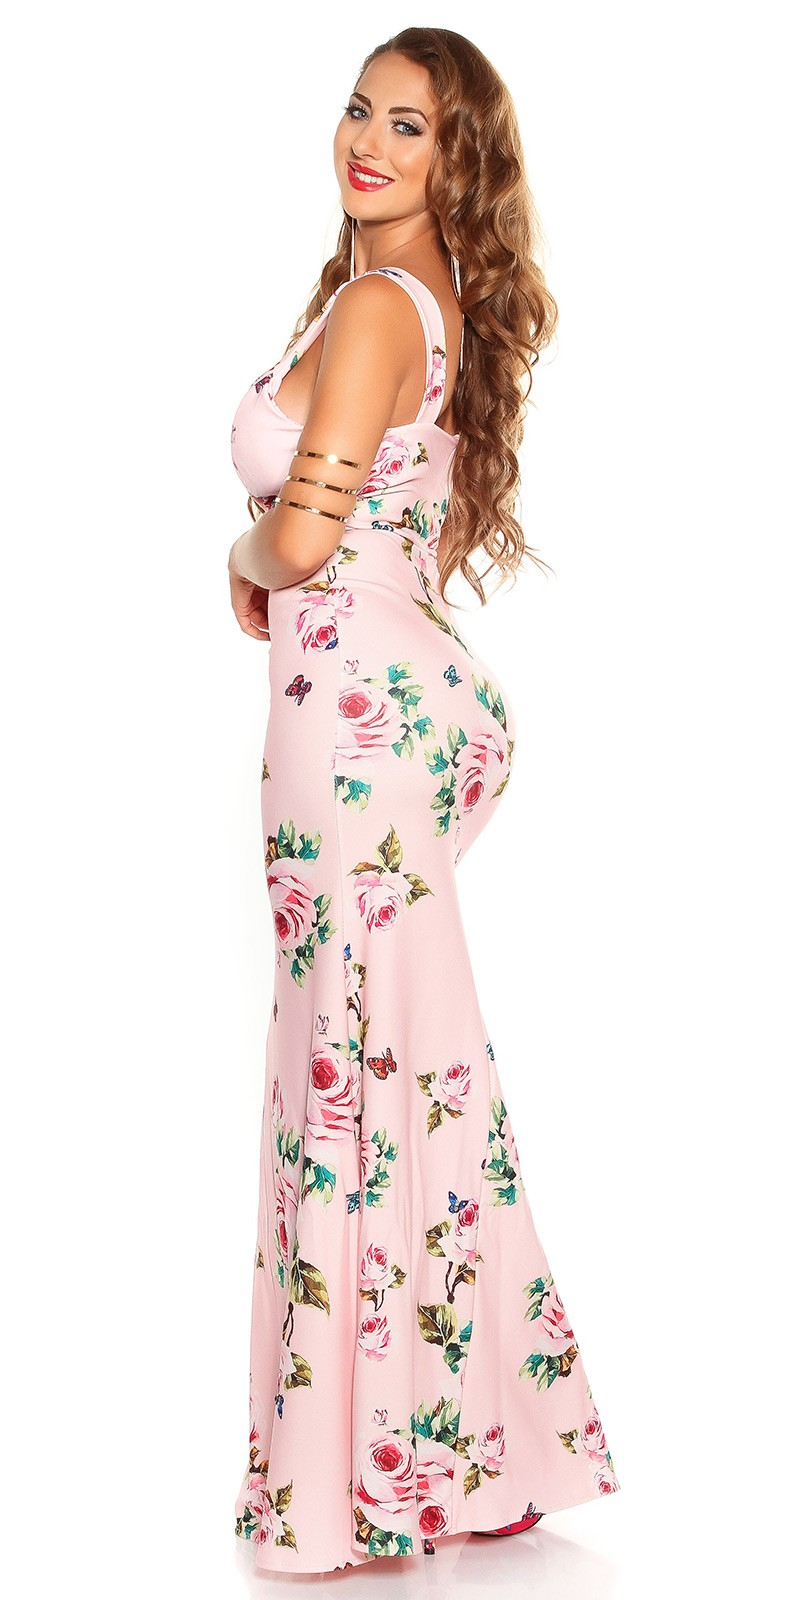 aaMaxidress with  Flower-Print  Color PINK Size Einheitsgroesse 0000K2855 ROSA 4 2c8282e50dd